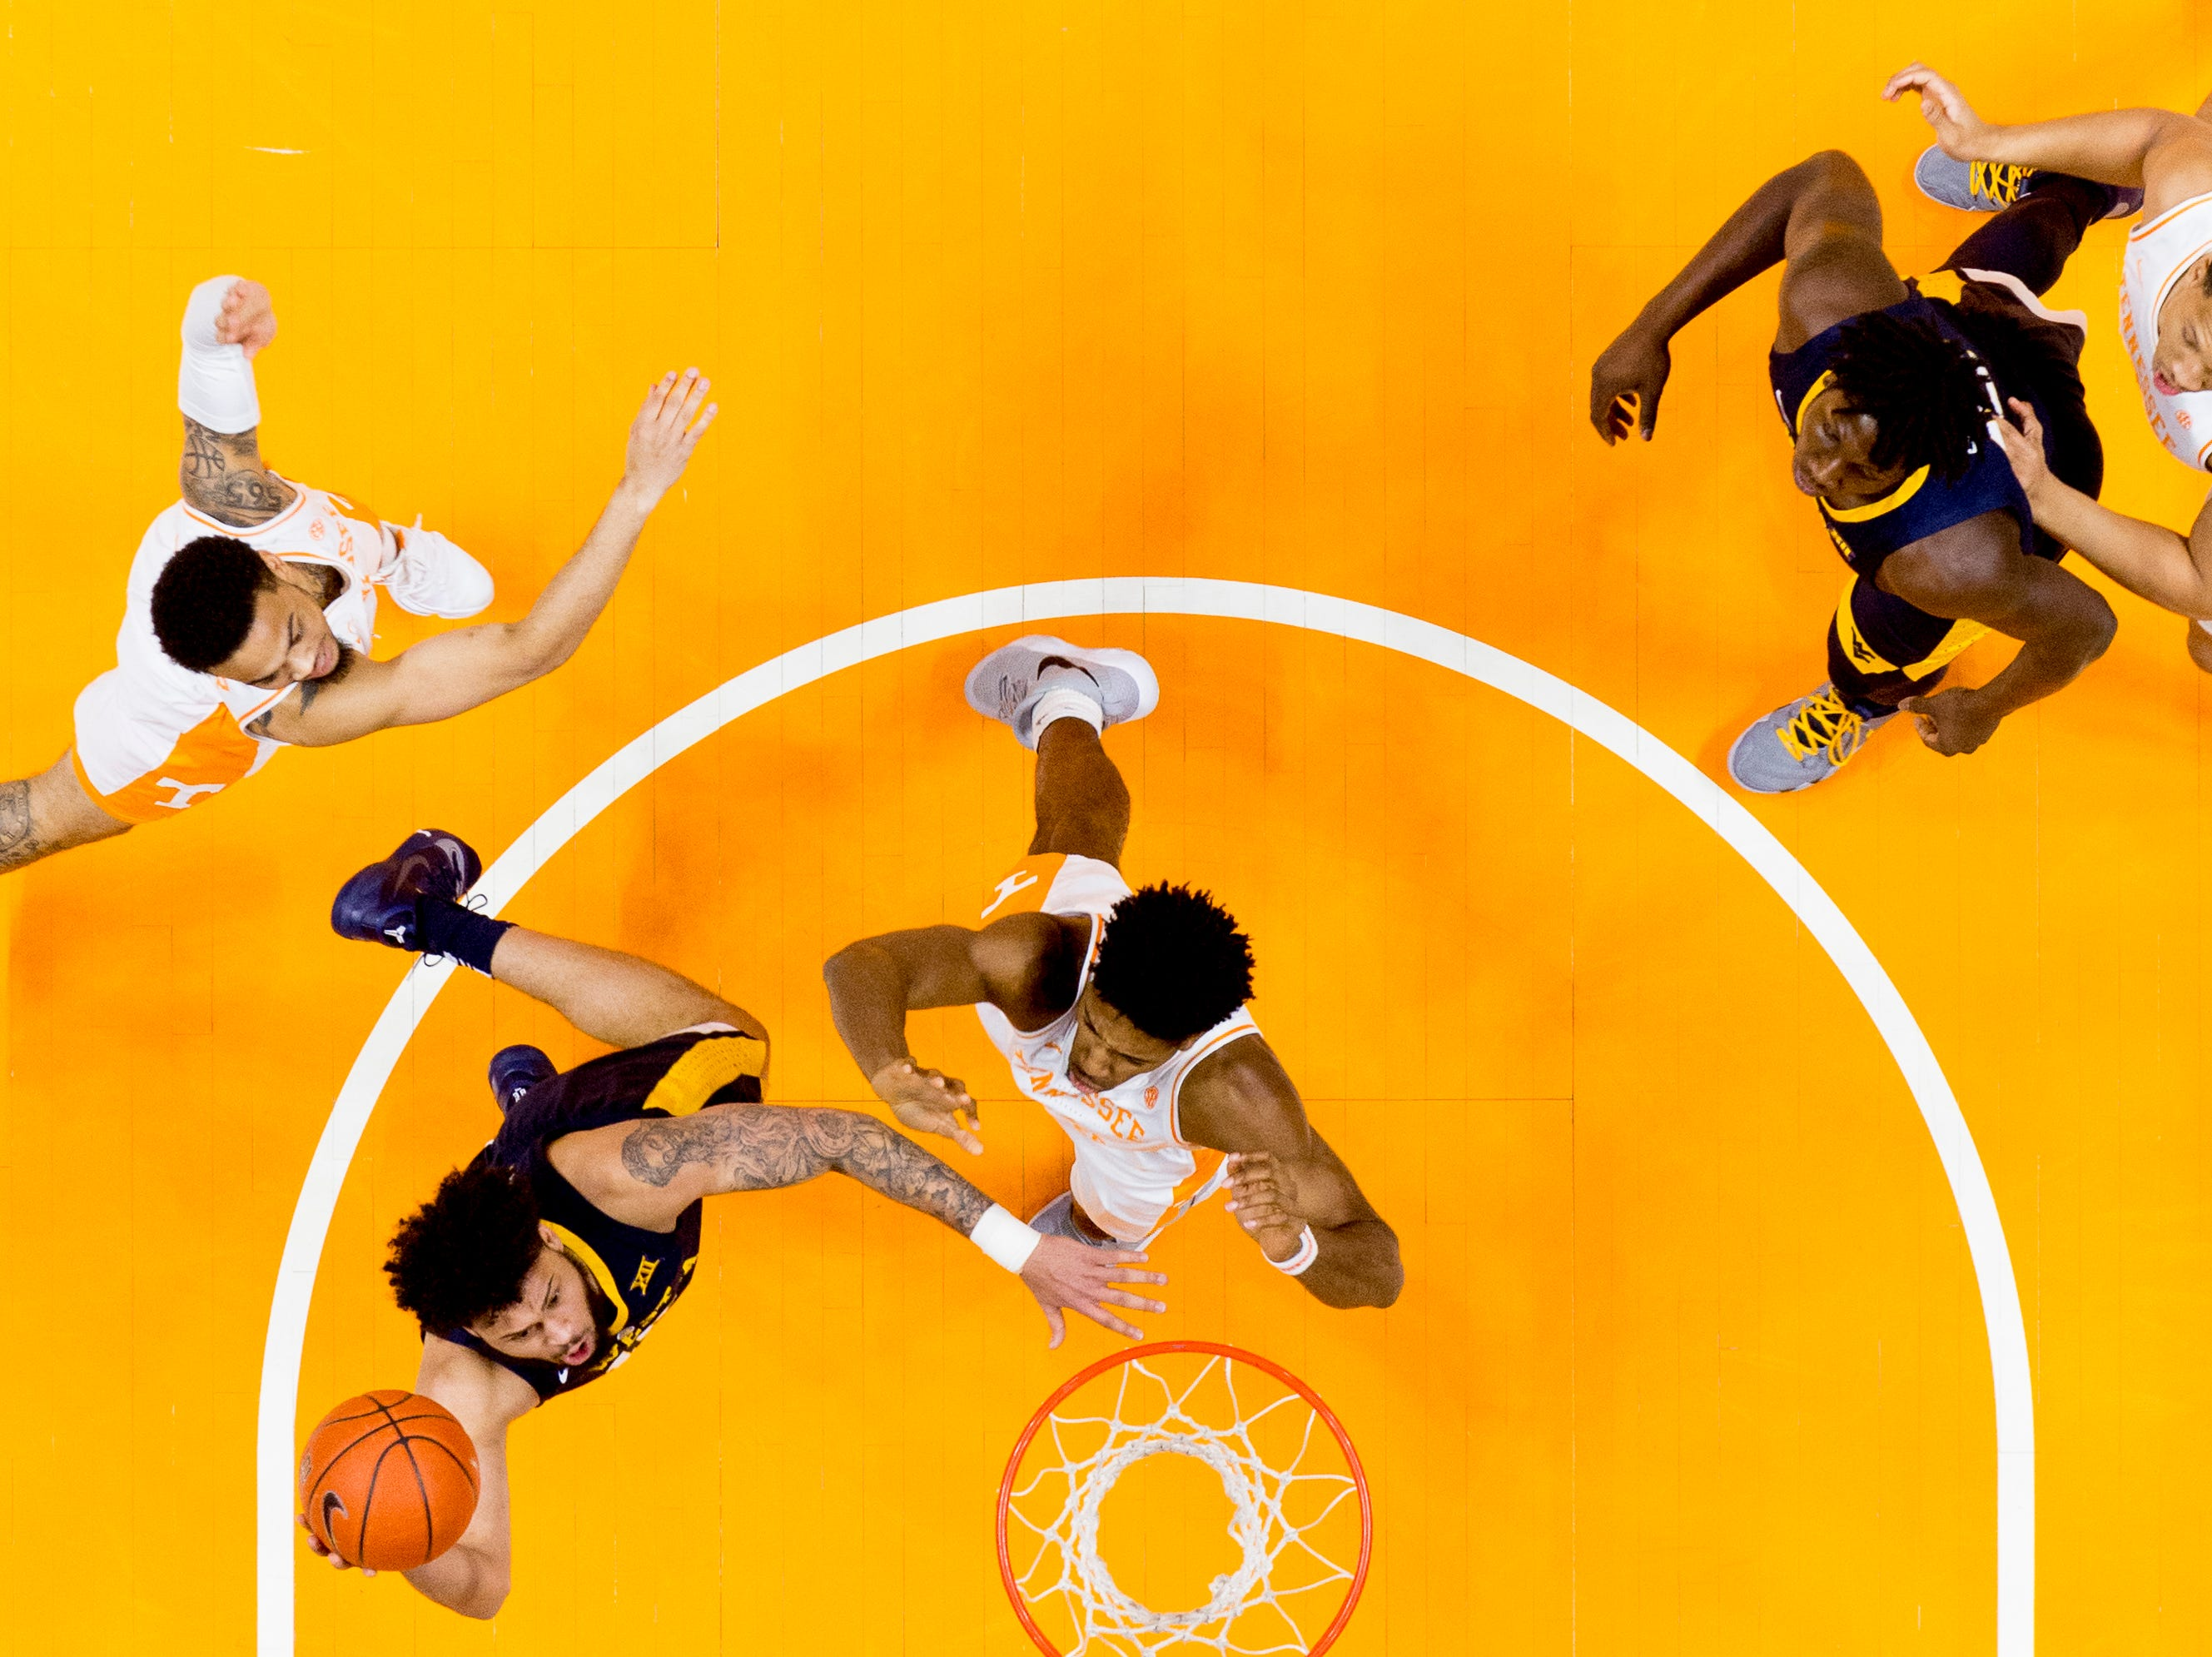 West Virginia guard Jermaine Haley (10) goes for a layup during a SEC/Big 12 Challenge game between Tennessee and West Virginia at Thompson-Boling Arena in Knoxville, Tennessee on Saturday, January 26, 2019.